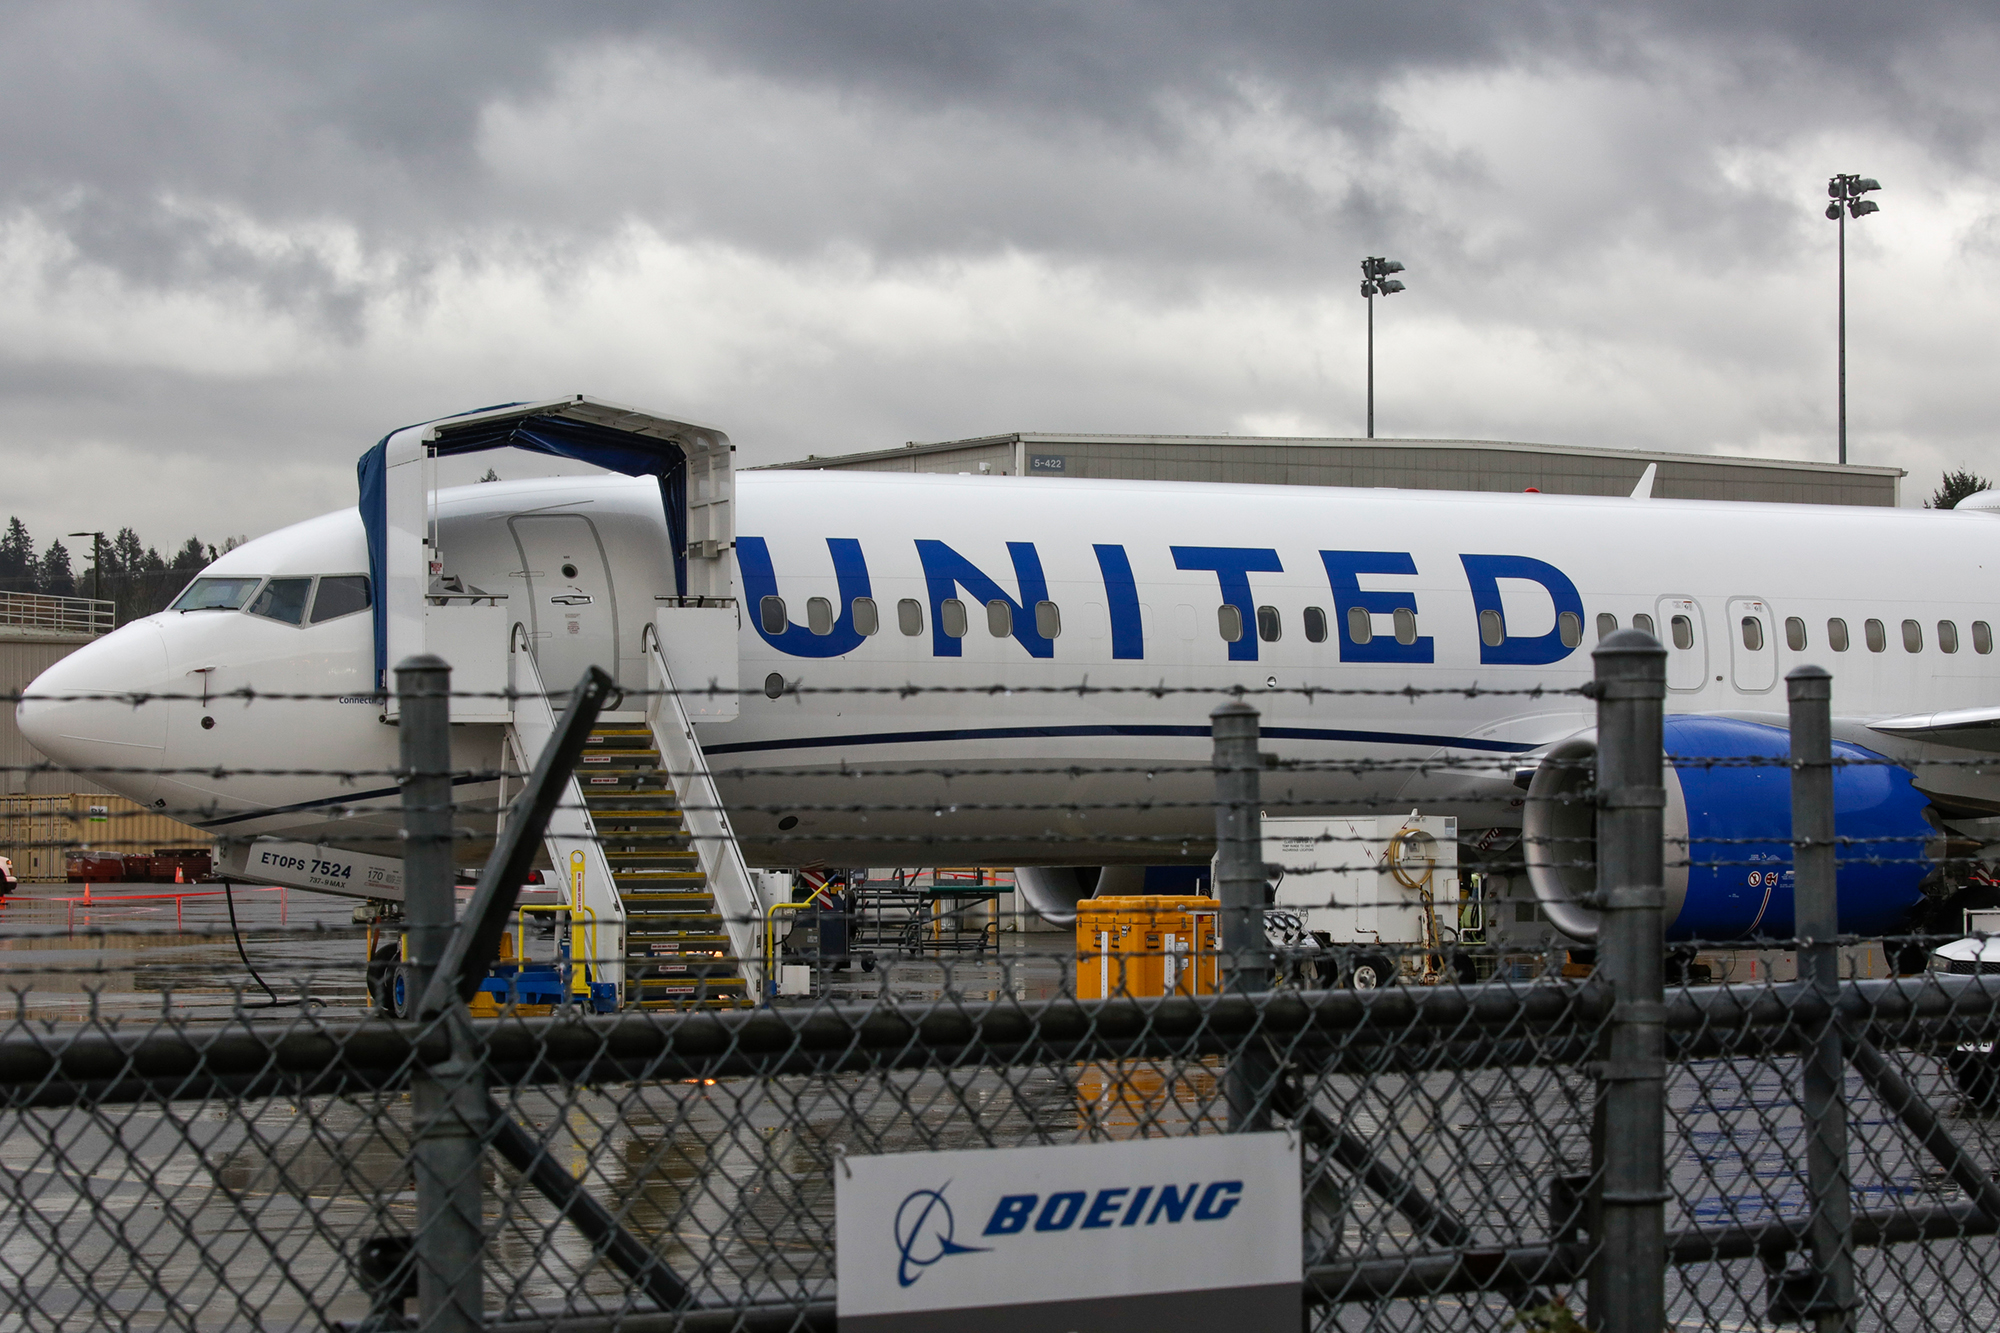 United, predicting a rebound in travel, buys 25 Boeing 737 Max jets